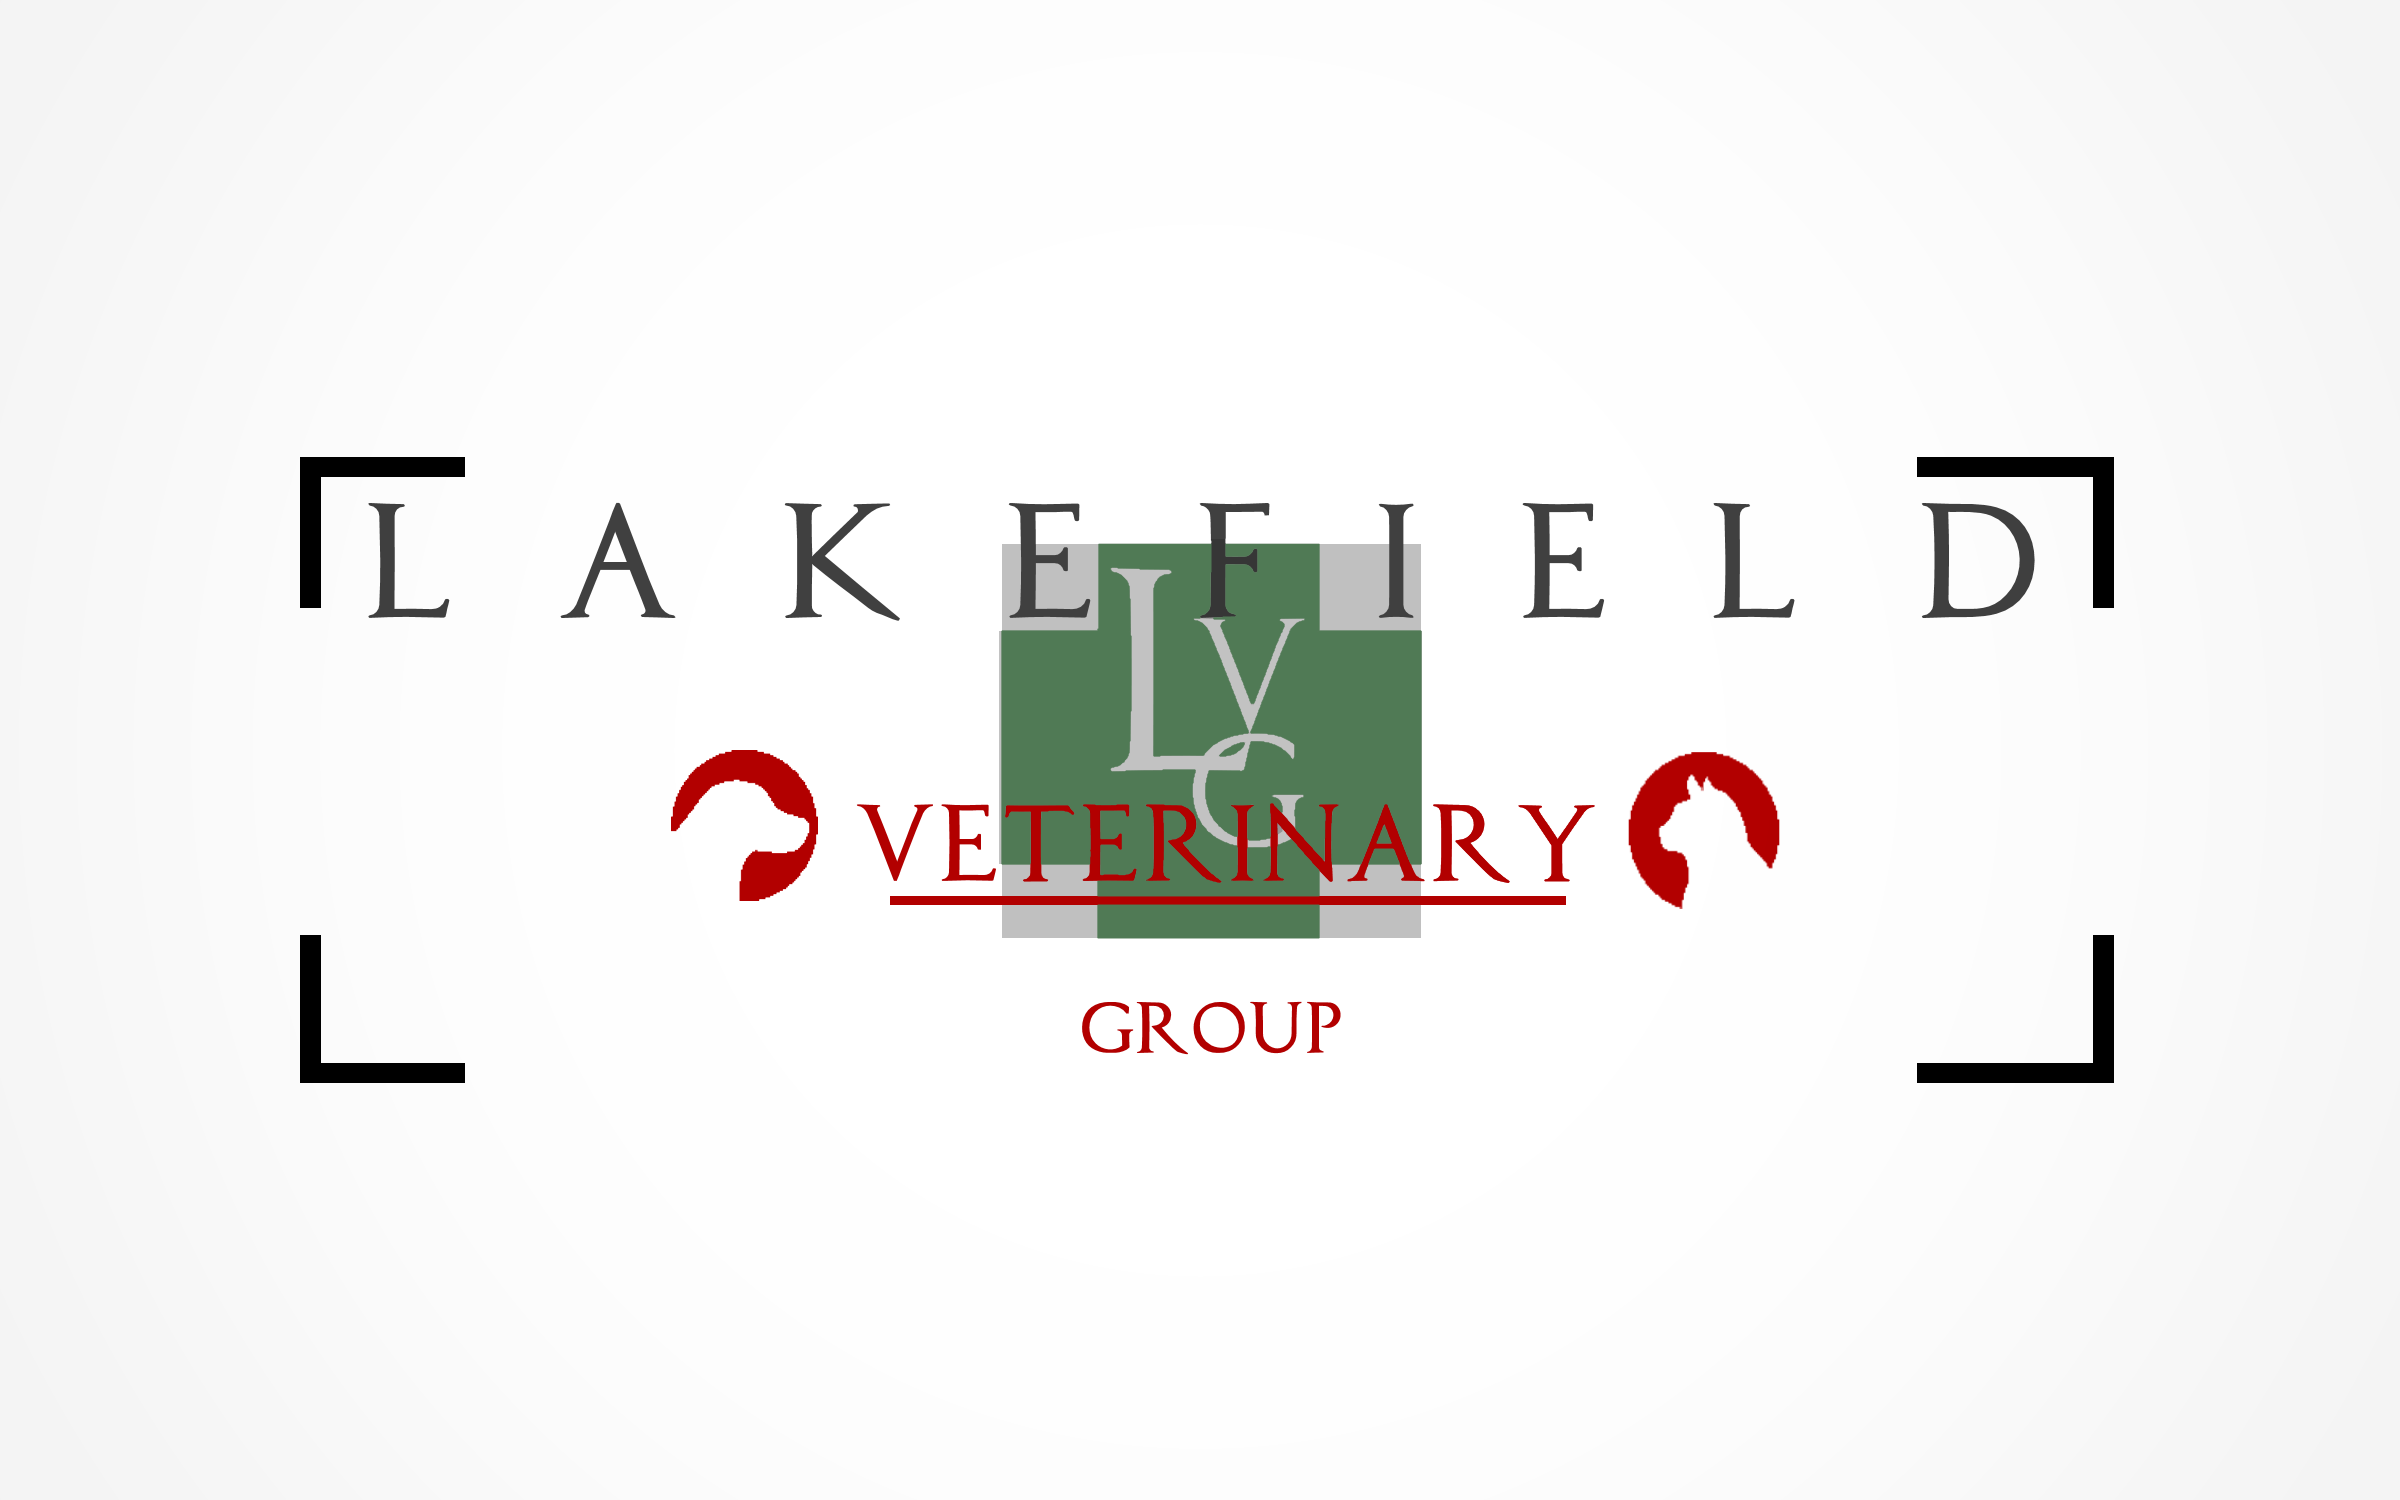 Logo Design by Roberto Bassi - Entry No. 22 in the Logo Design Contest Inspiring Logo Design for Lakefield Veterinary Group.